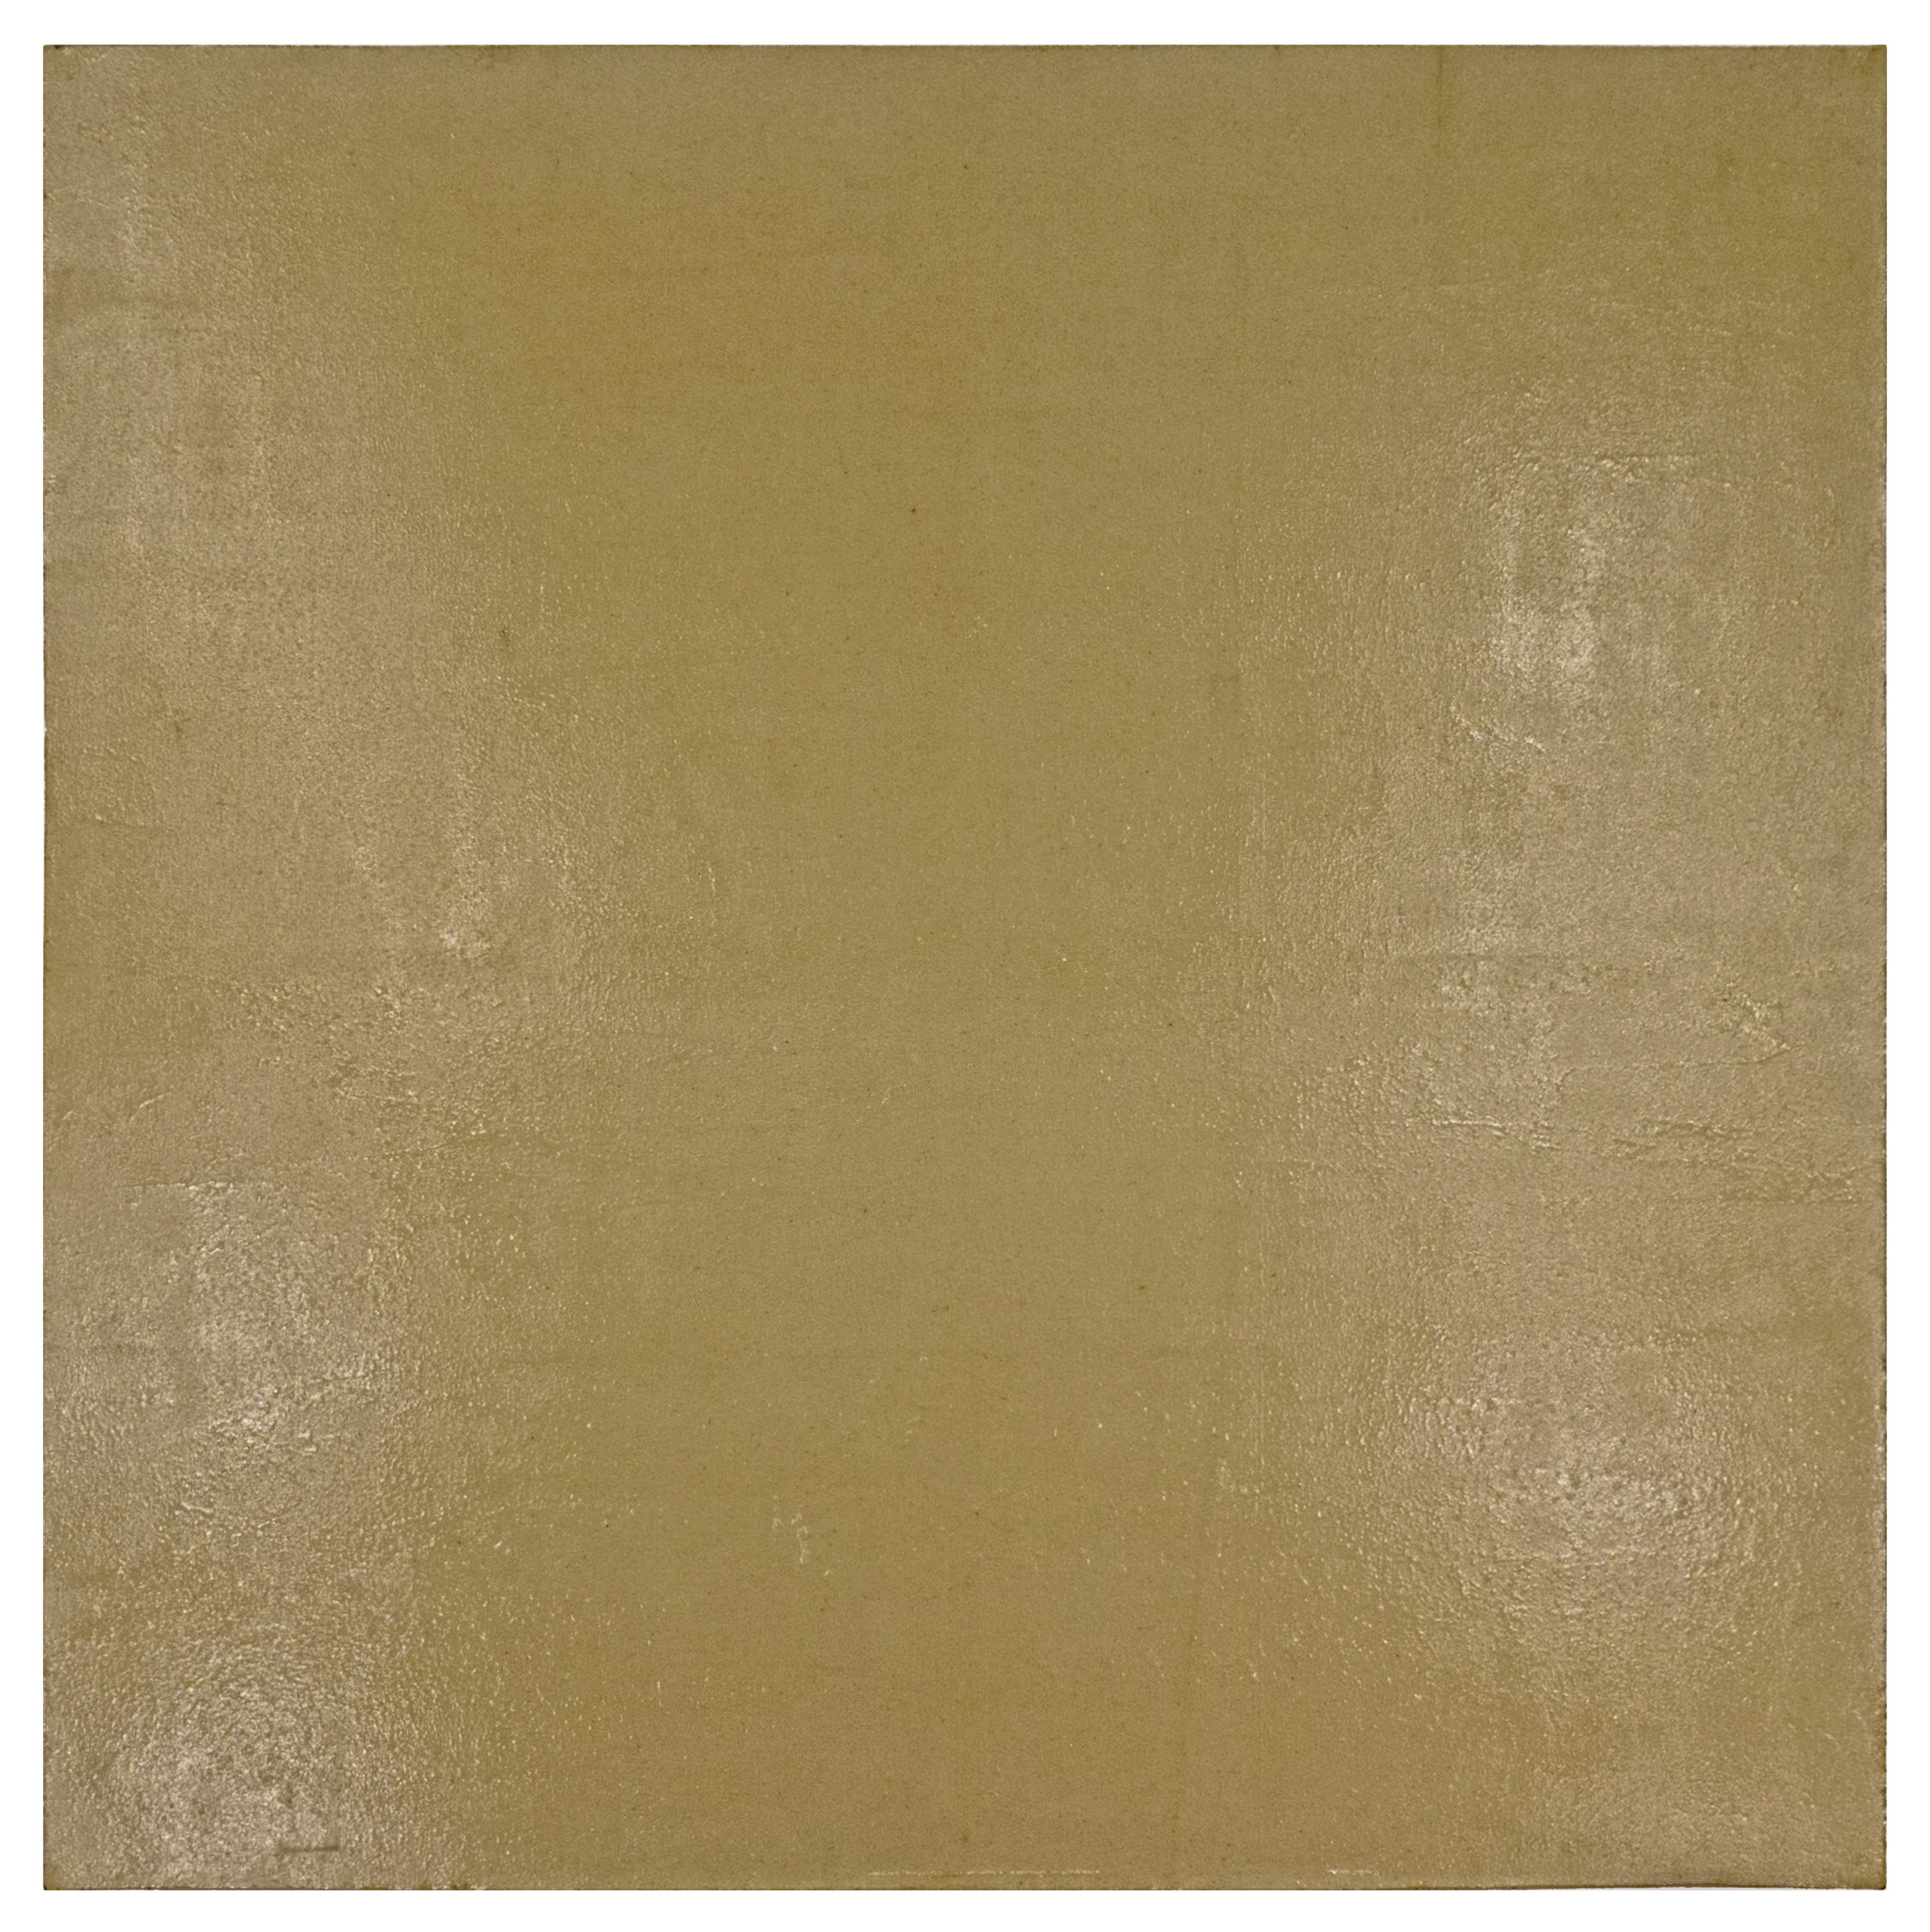 "Kleu; 1971; Gesso and acrylic on linen; 46 x 46""; Item #252"